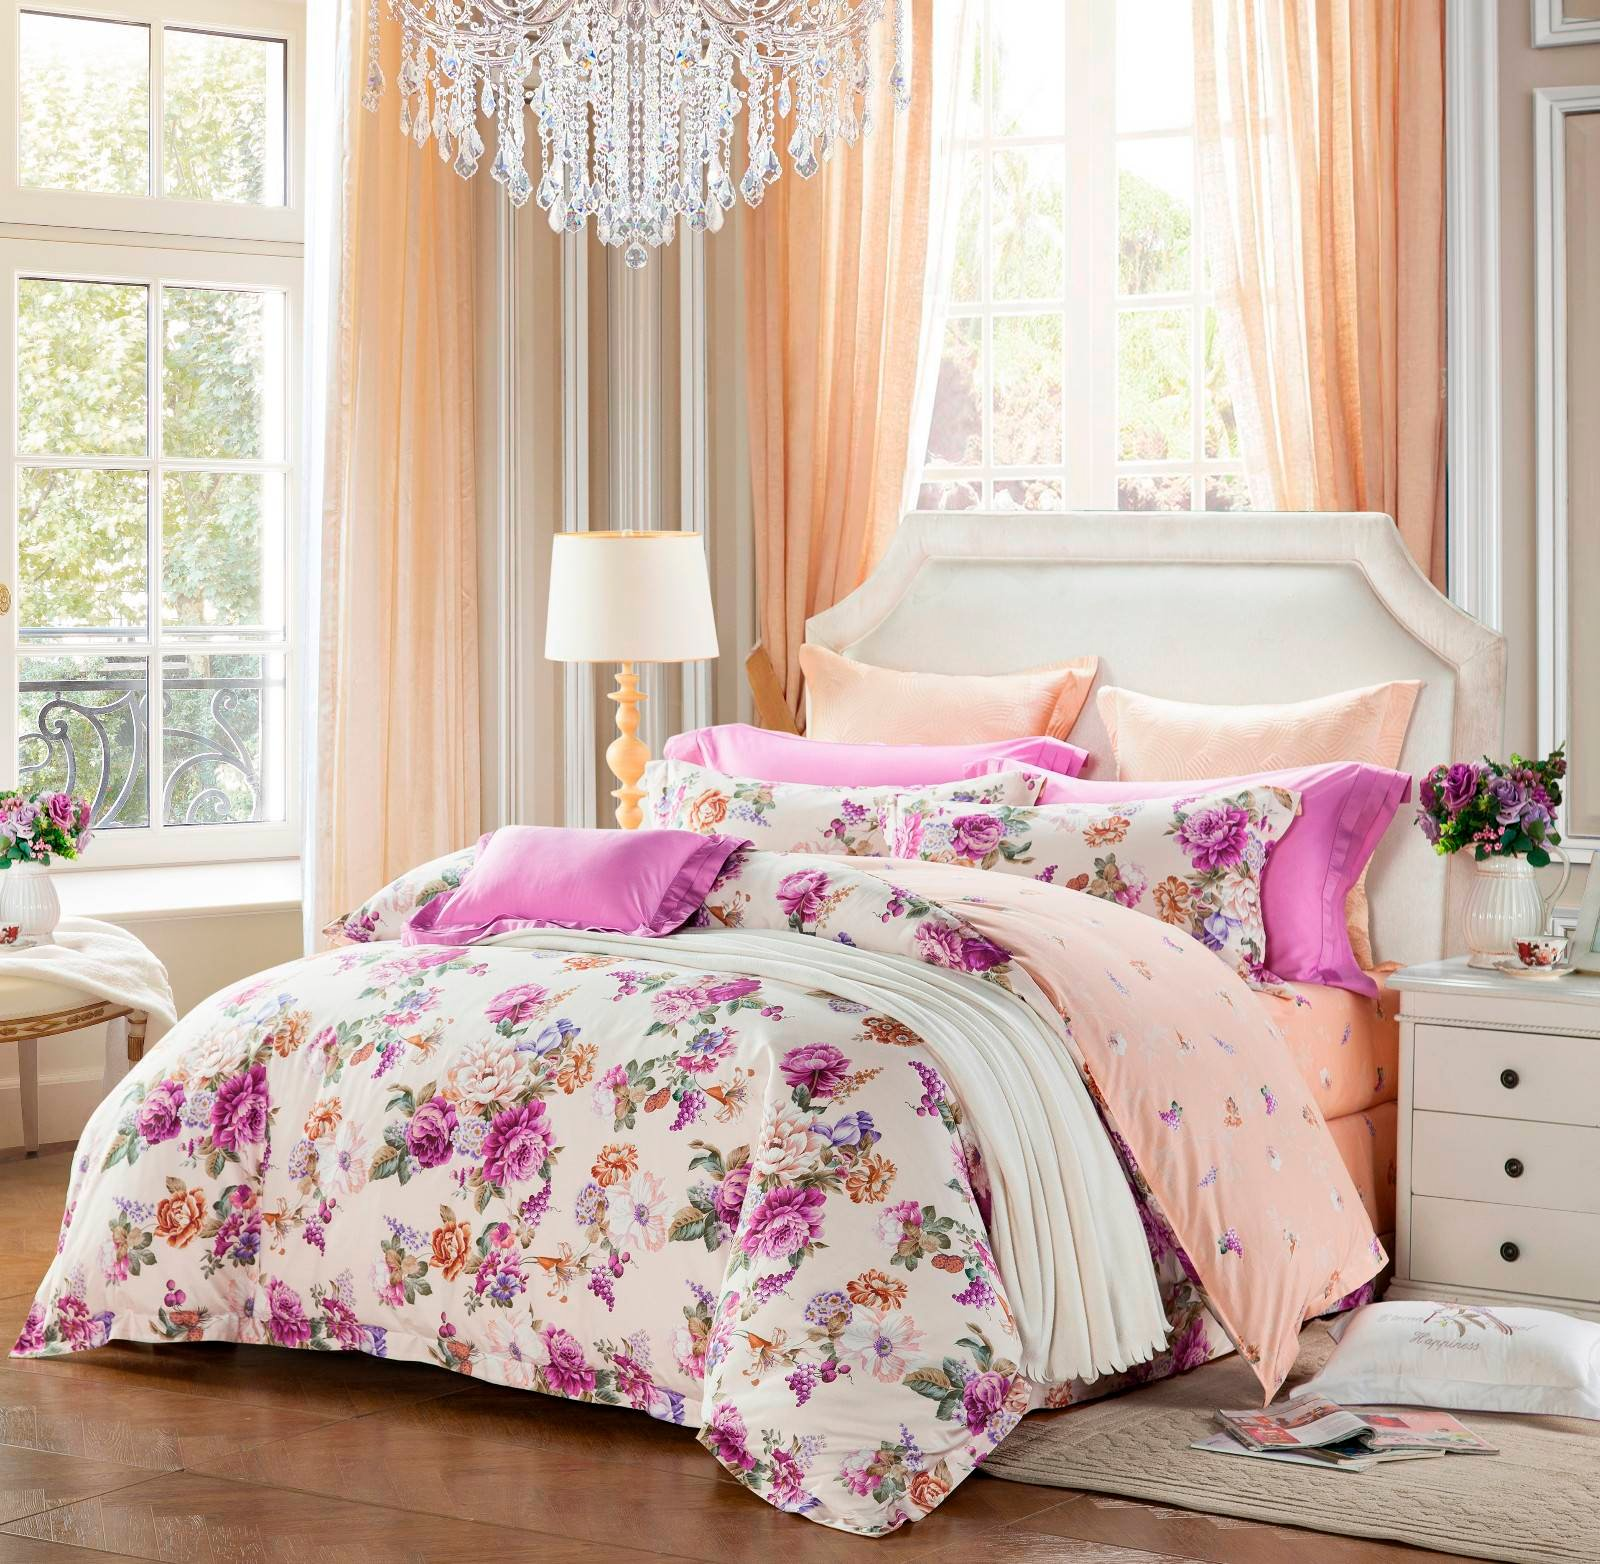 Daphne Sophisticated Floral Cotton Printed Bedding  6853 100% Cotton Printed image44